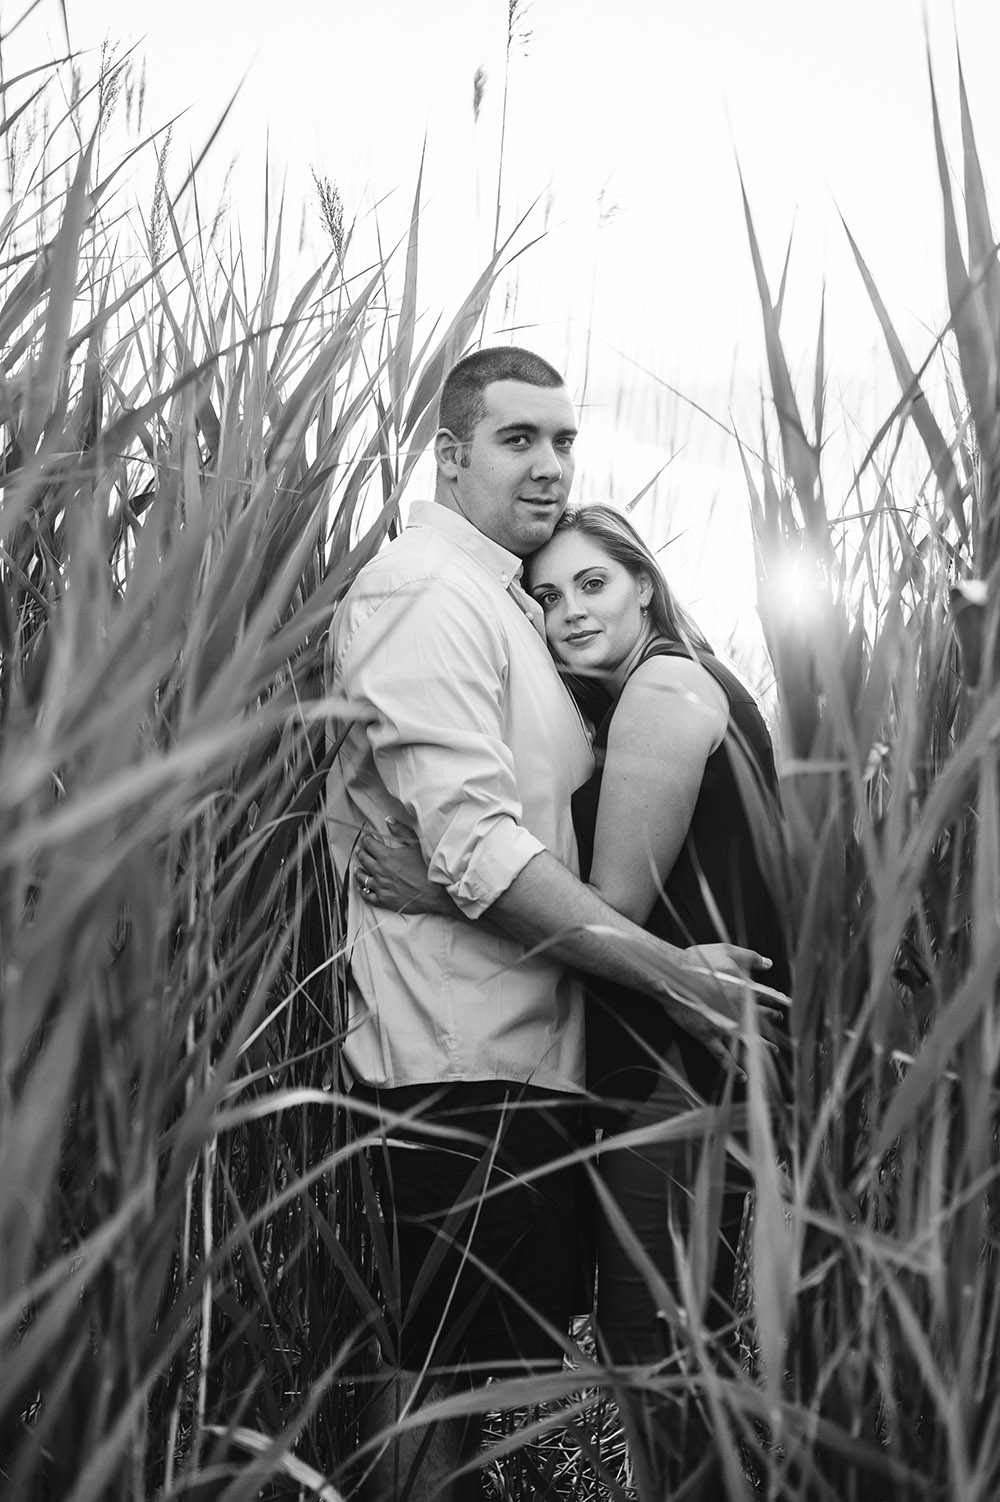 ct-engagement-photos-greg-lewis-photography-22